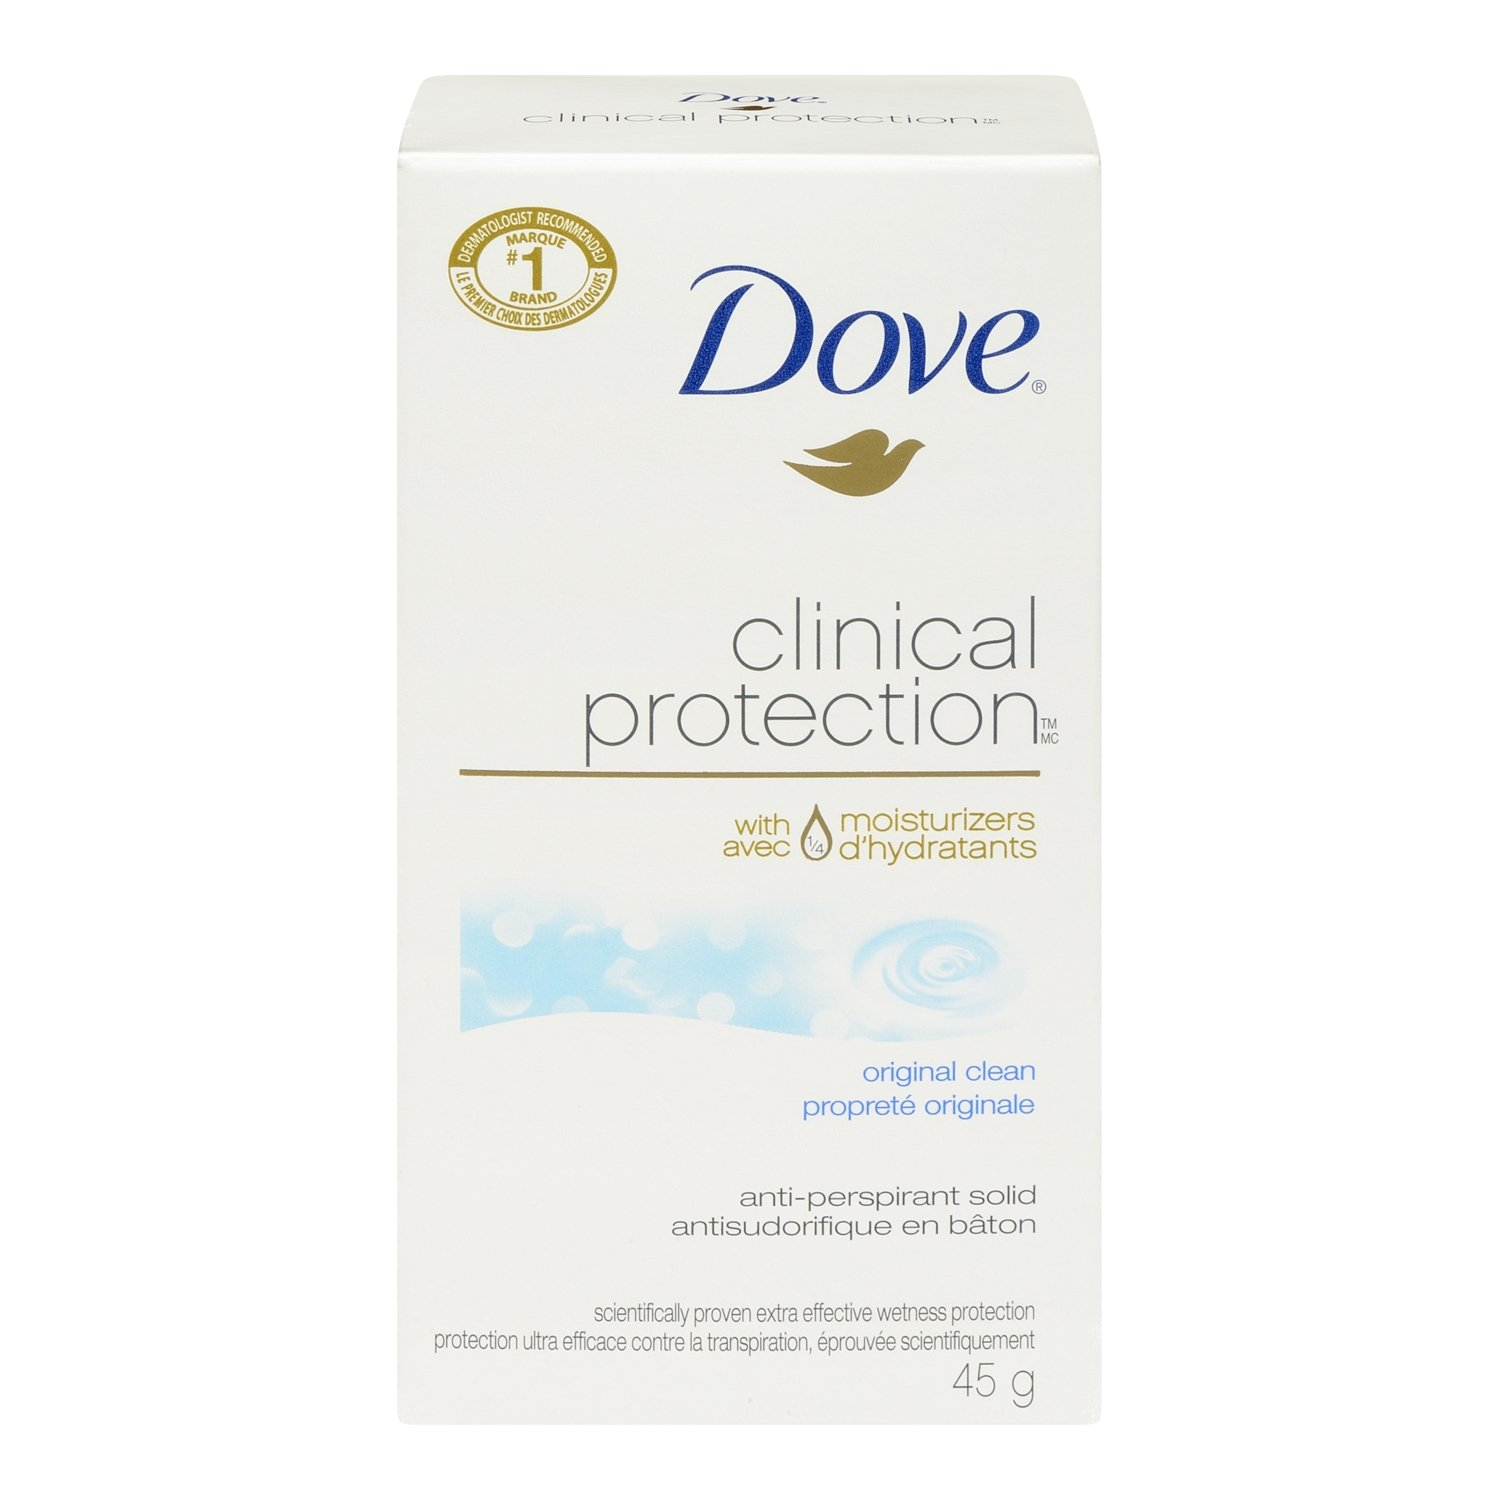 Dove Clinical Protection Original Clean Anti-Perspirant Solid 45g